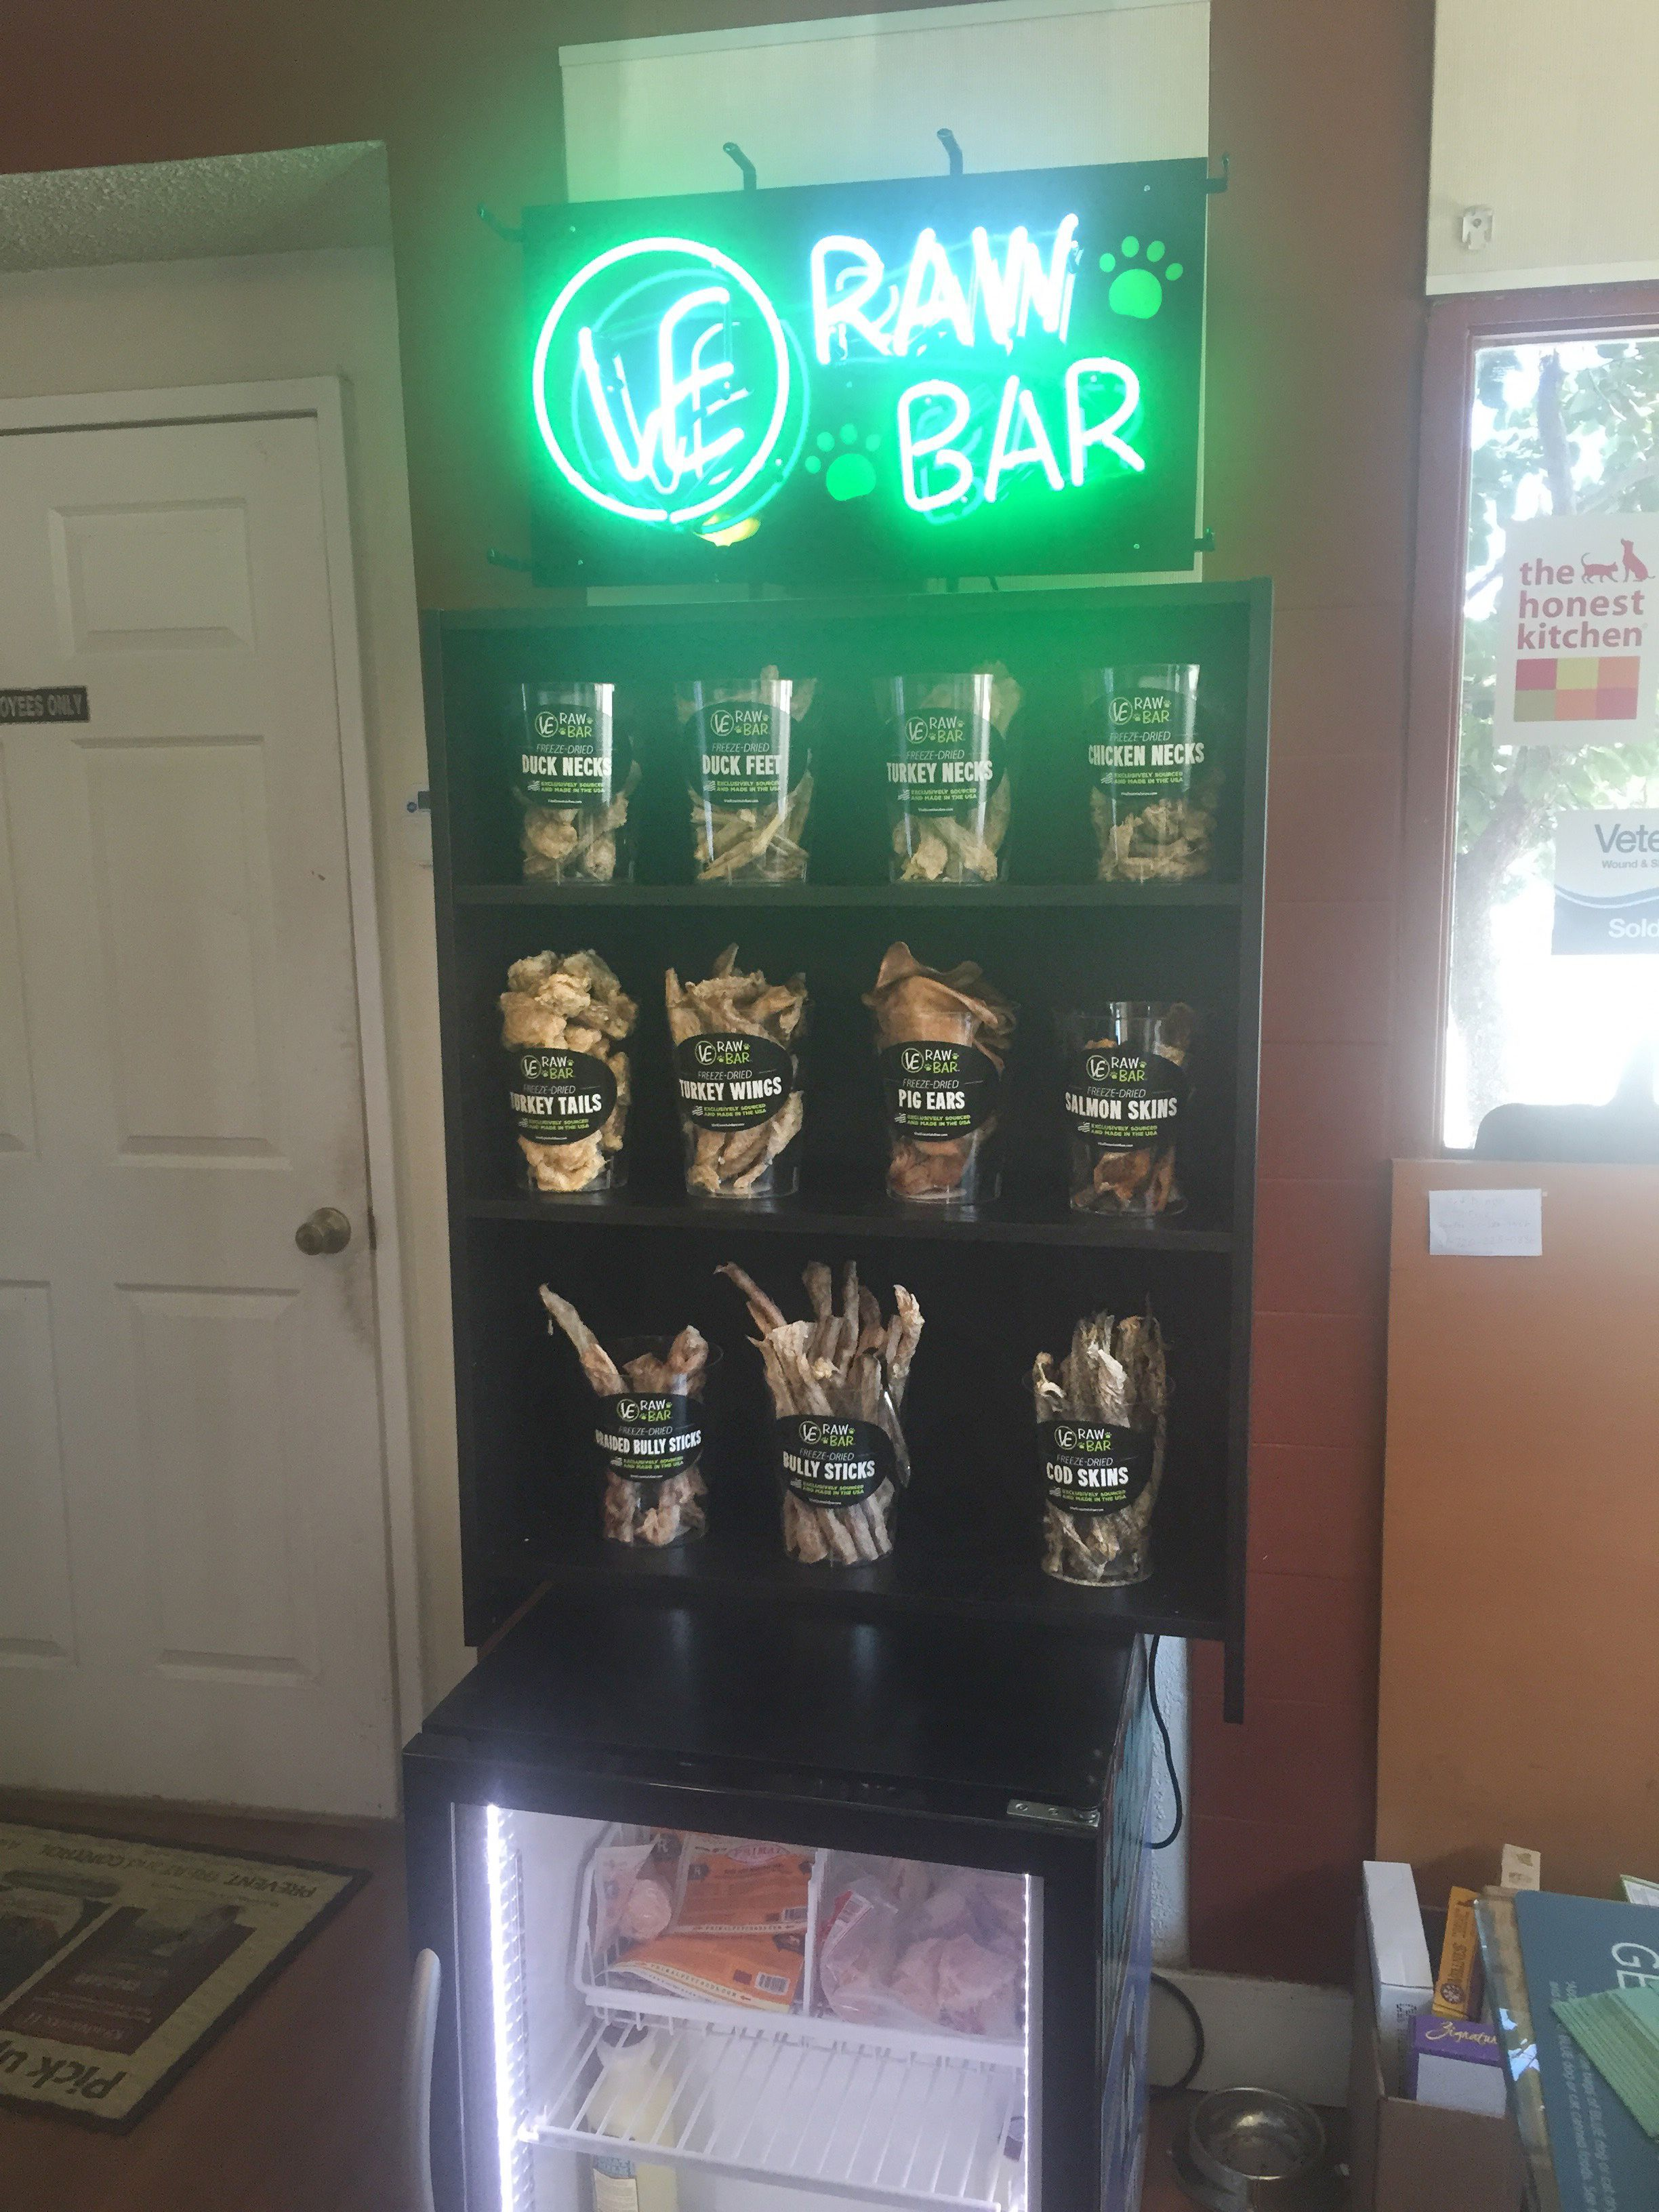 Global Pet Food Outlet Express In Redondo Beach Ca Ve Raw Bar By